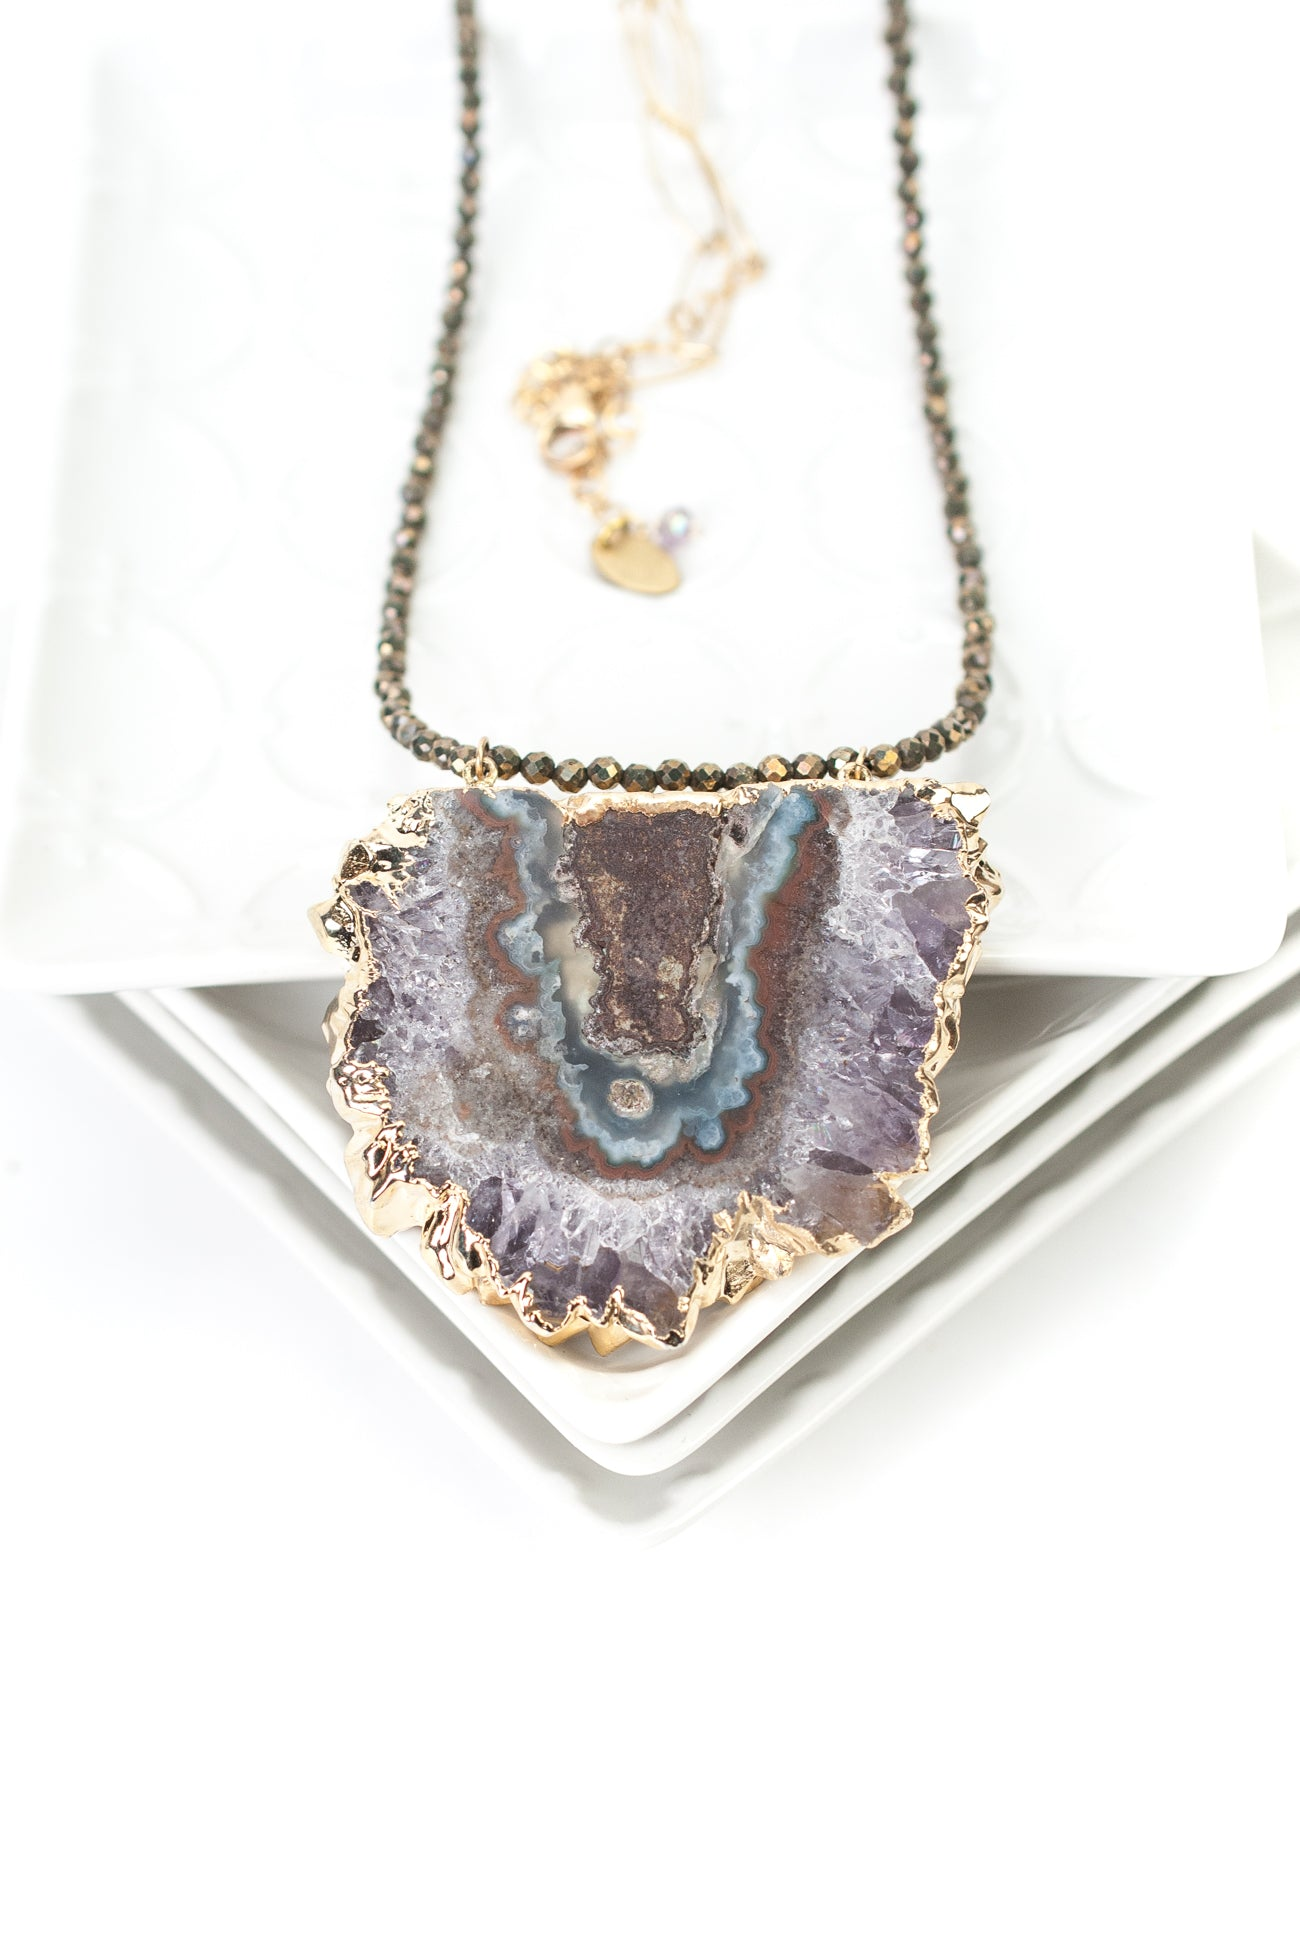 "*One of a Kind 32-34"" Pyrite and Mineral Slice Focal Necklace"